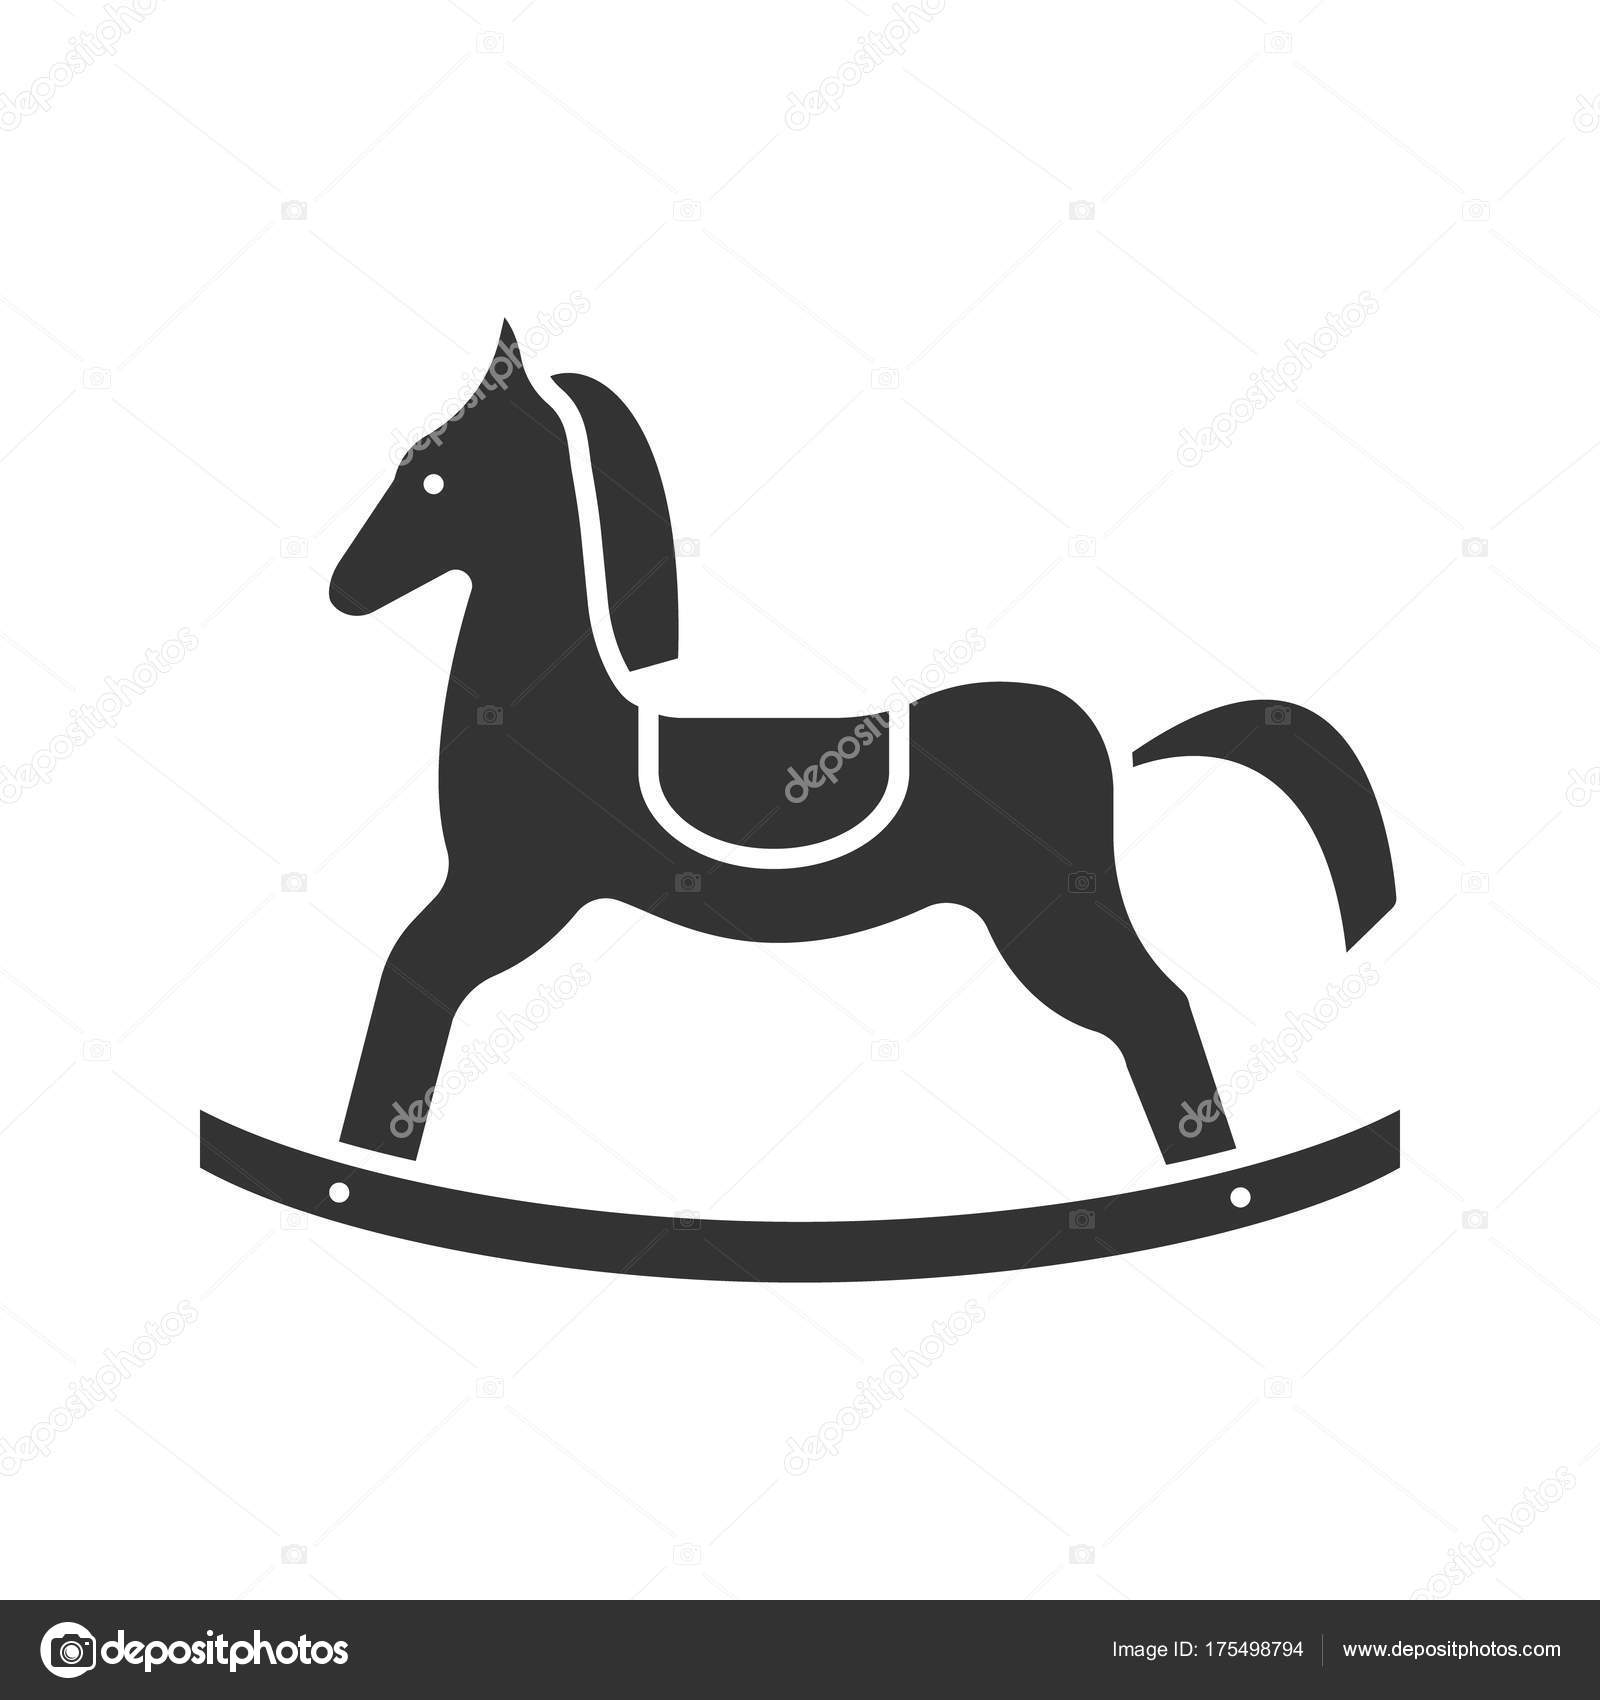 Rocking Horse Glyph Icon Silhouette Symbol Negative Space Vector Isolated Stock Vector C Bsd 175498794